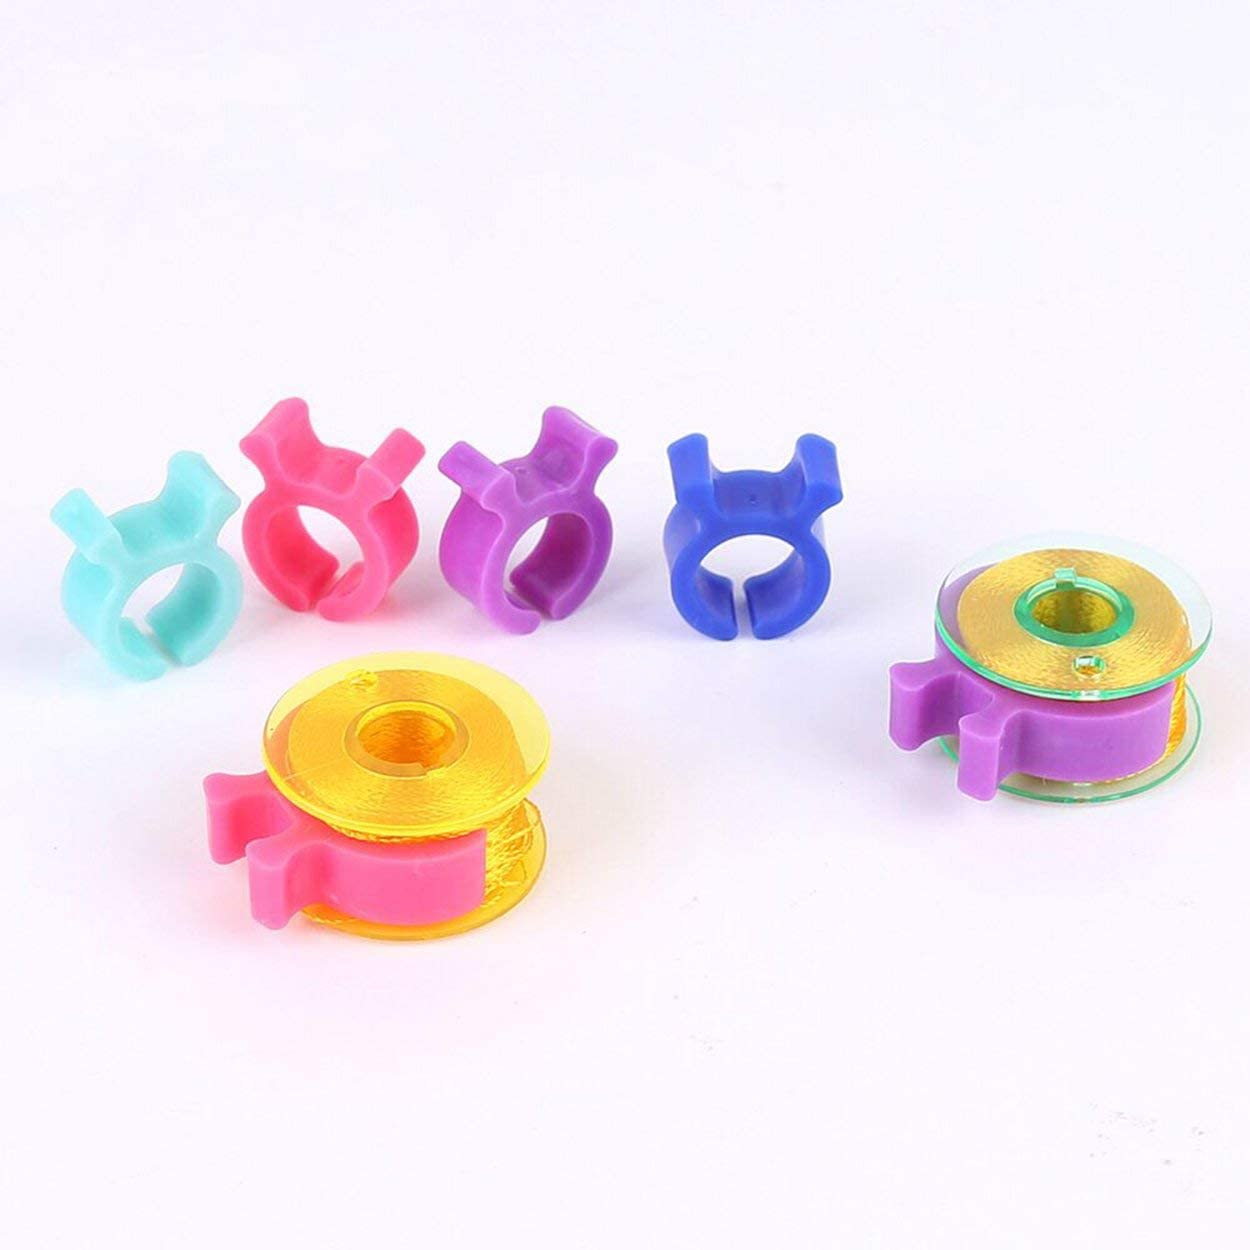 Pack Sewing Bobbin case Small Clips Sewing Tool Accessory Color Thread Clips Holder Tool Fabrics and Textiles,24pcs Other Sewing